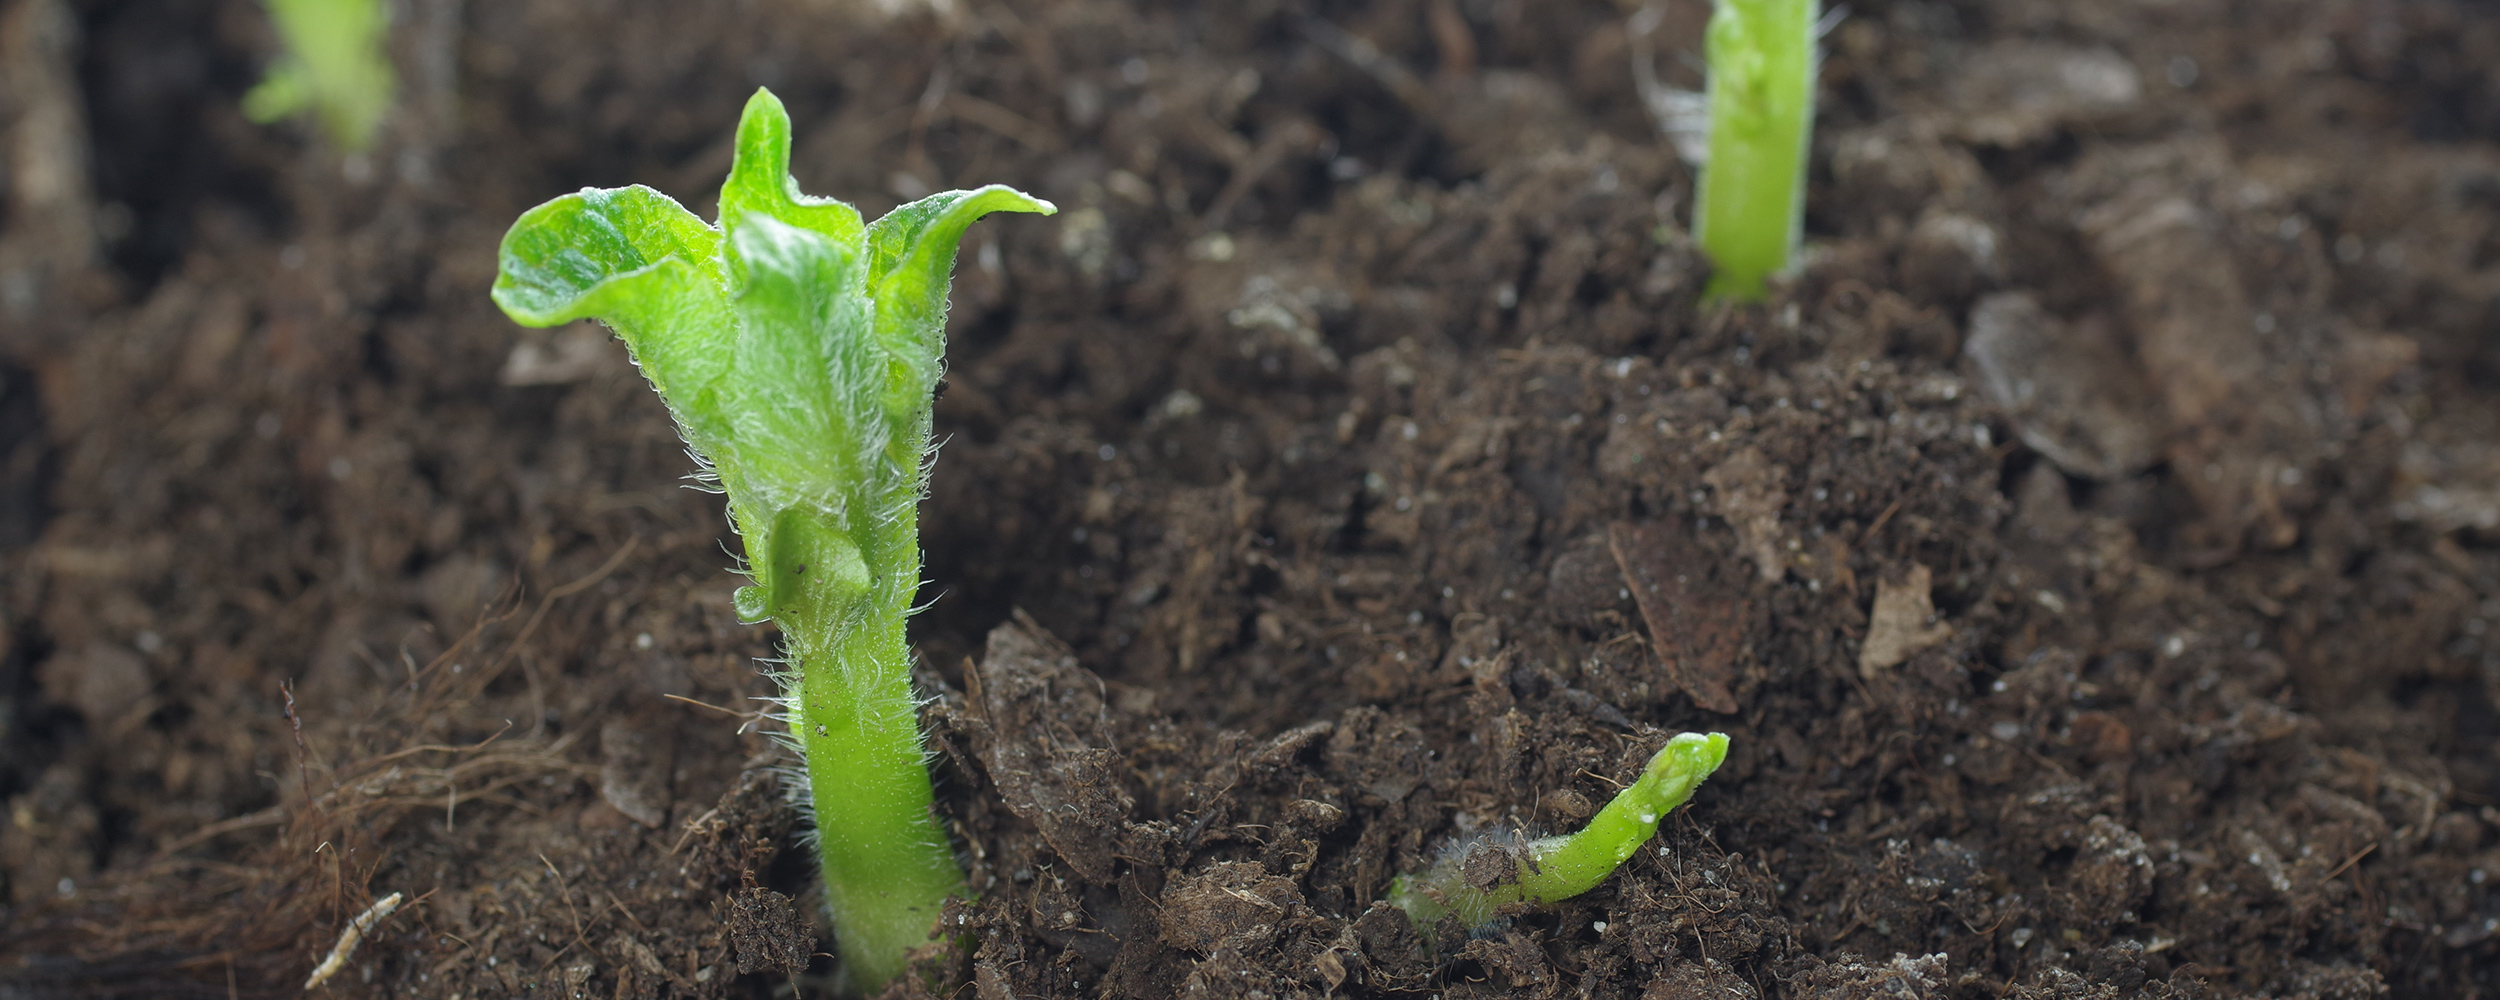 When It Comes to Improving Soil Health on Your Farm, Set Your Sights on the Long-Term Goals